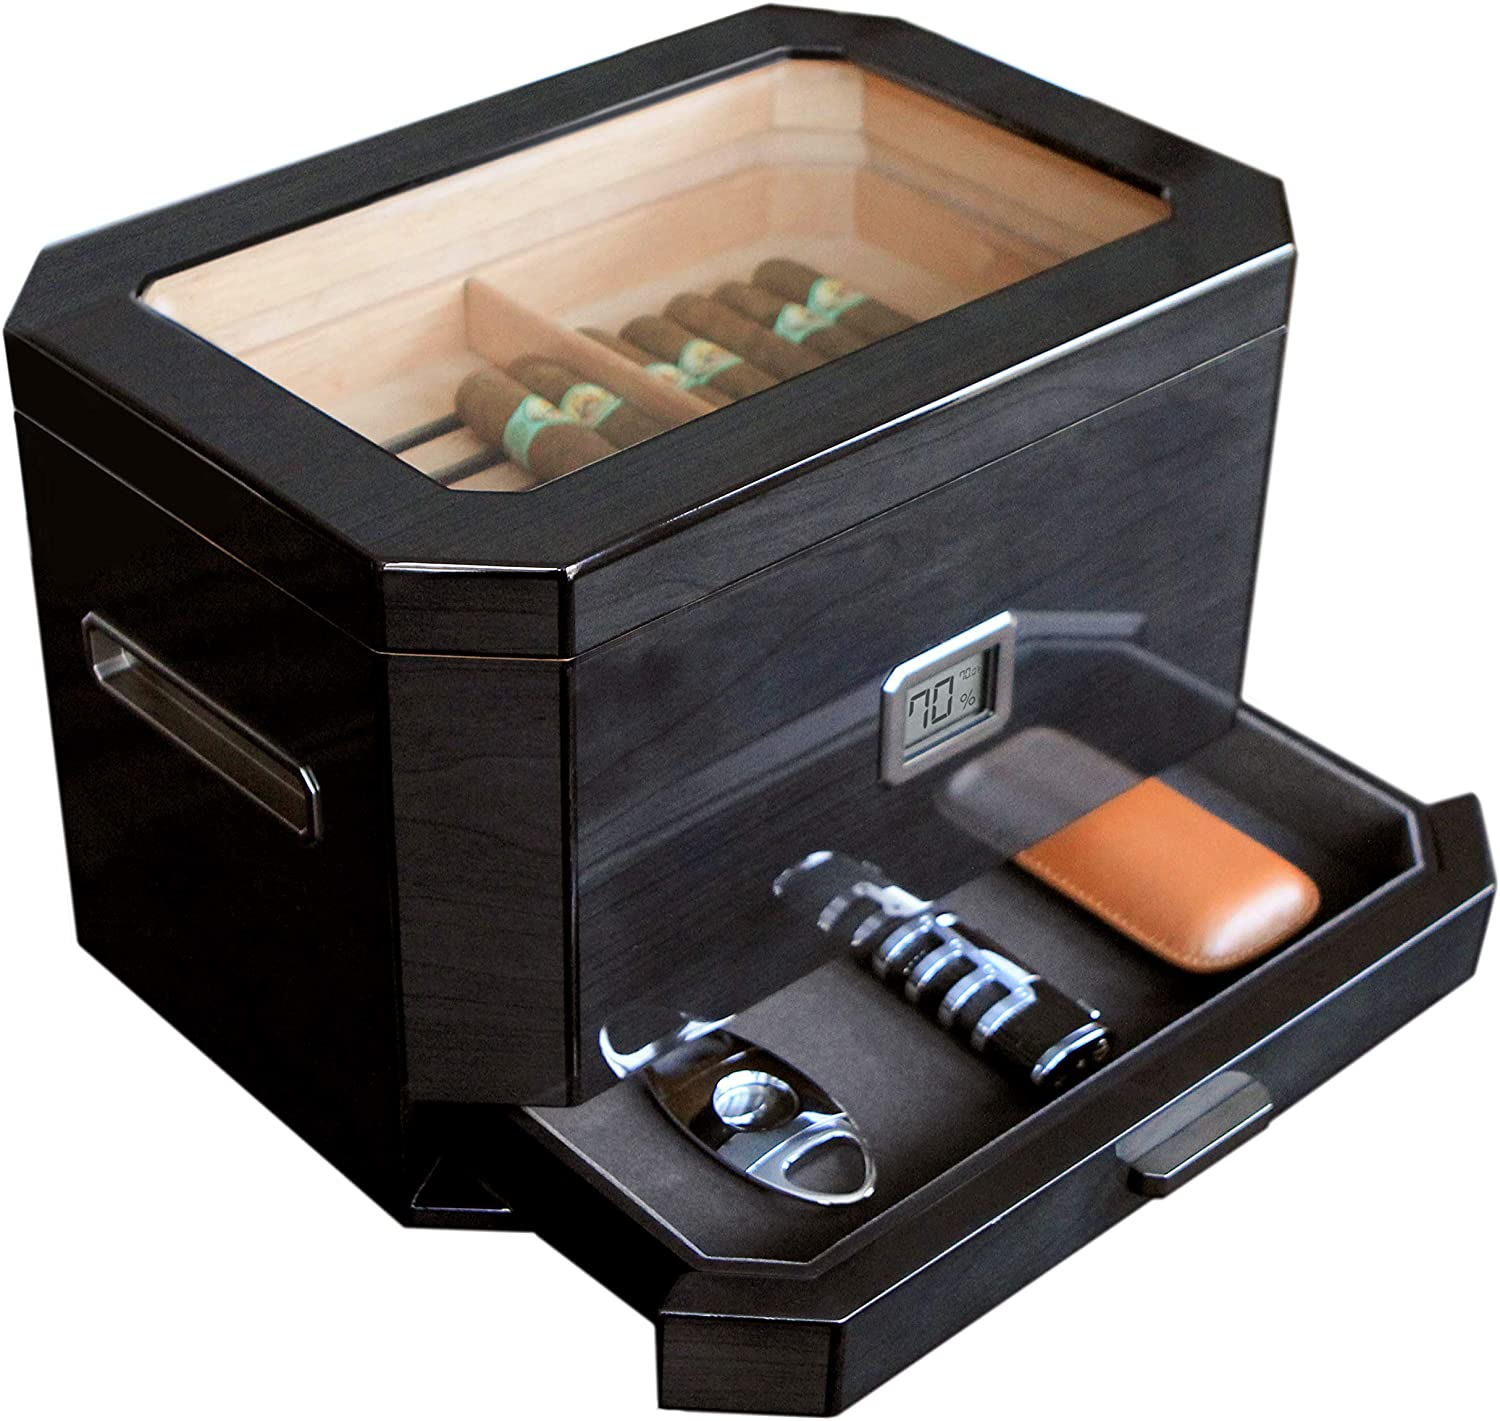 Octodor All items in the store Large Black Piano Finish Glass Di Cedar Top Sale item Humidor with